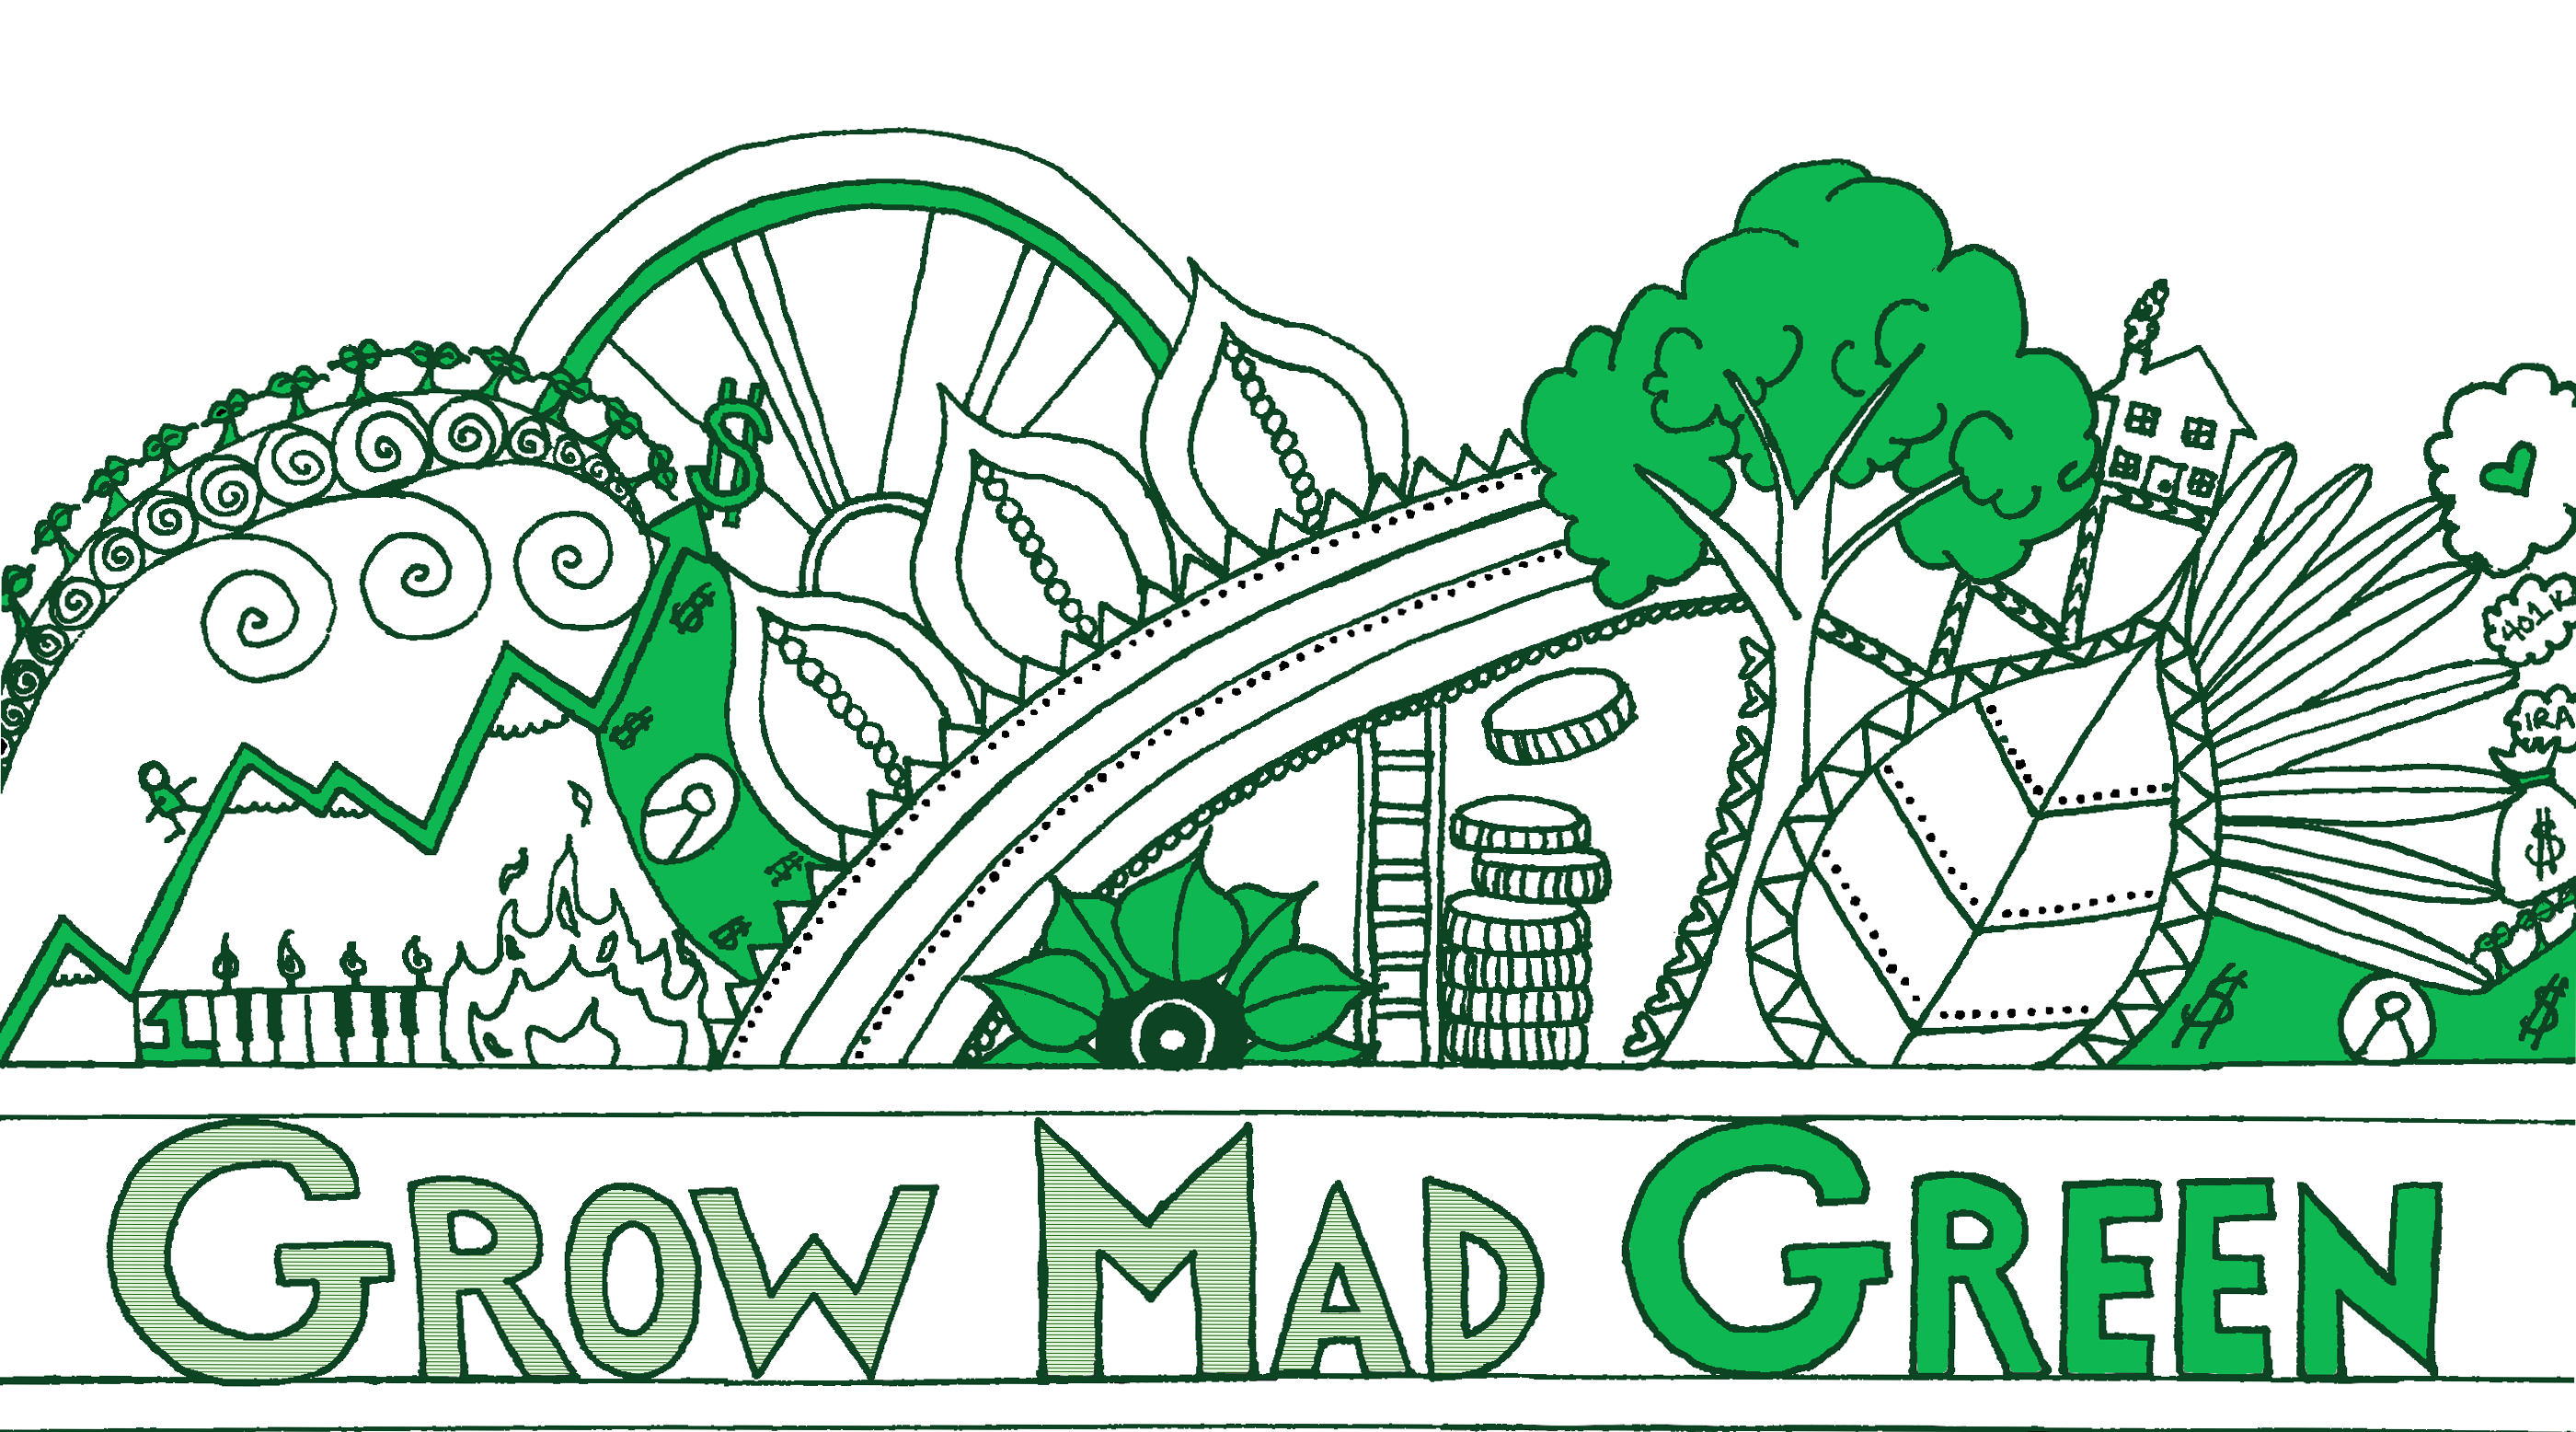 Grow Mad Green